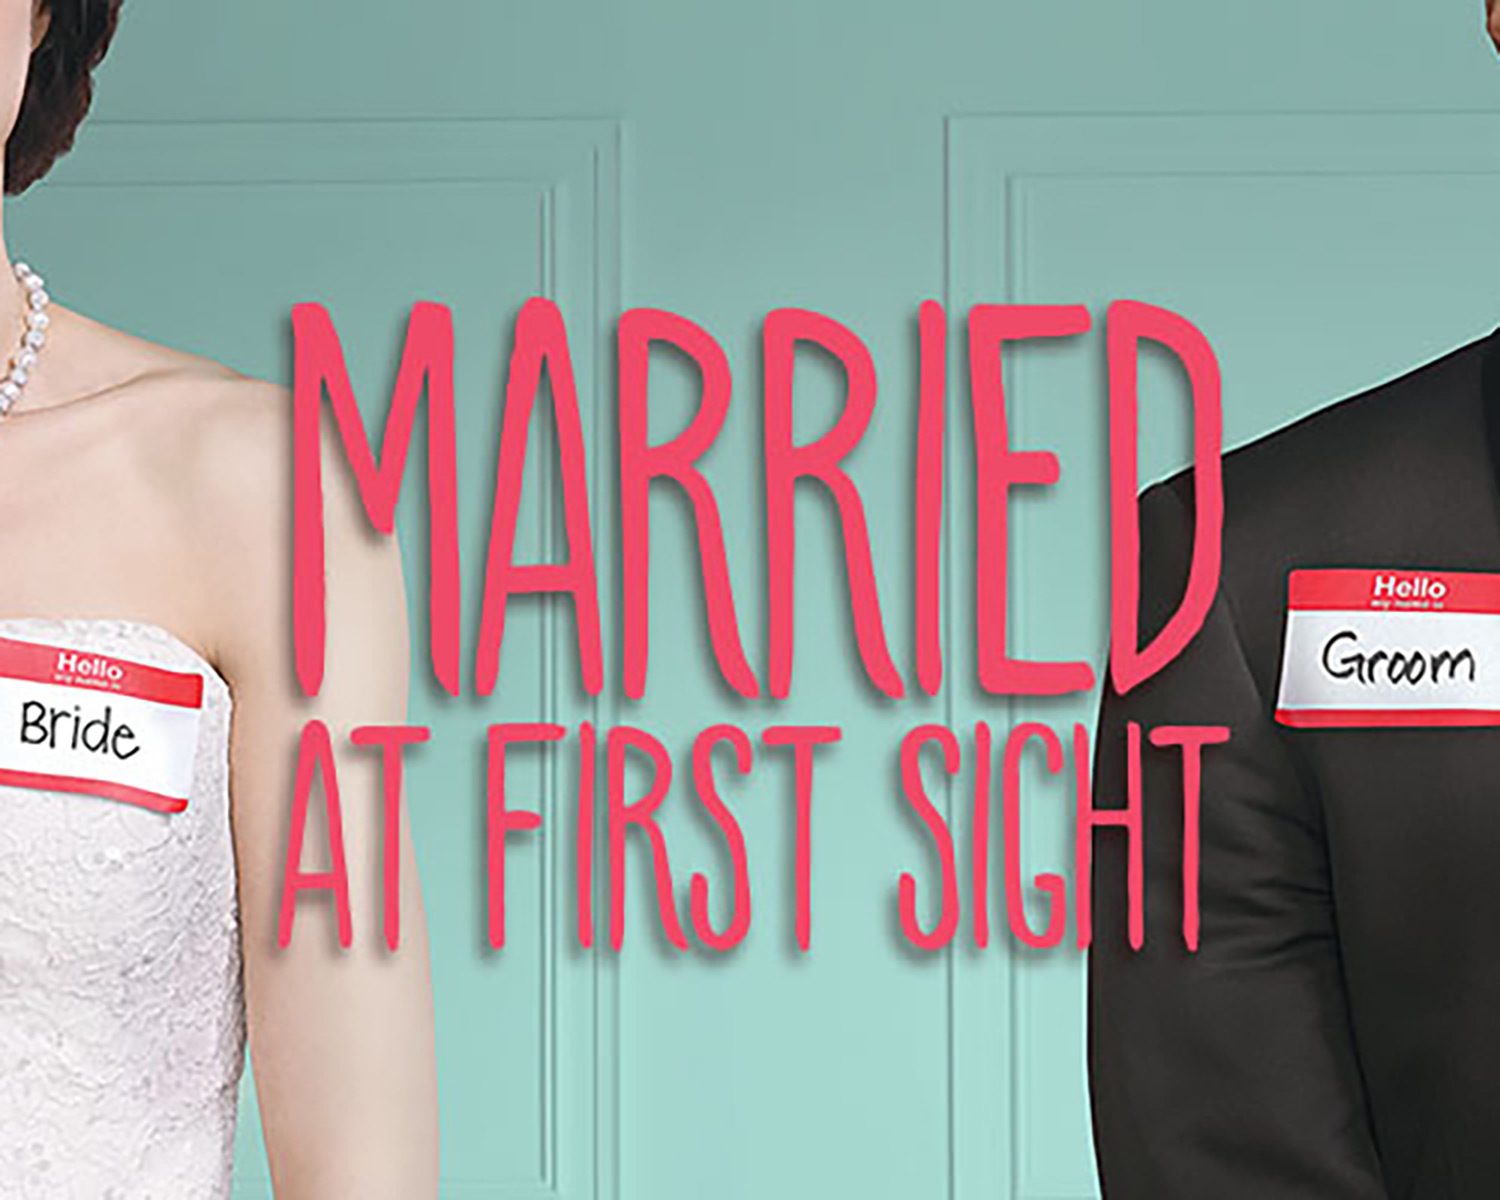 Married at First Sight on FYI